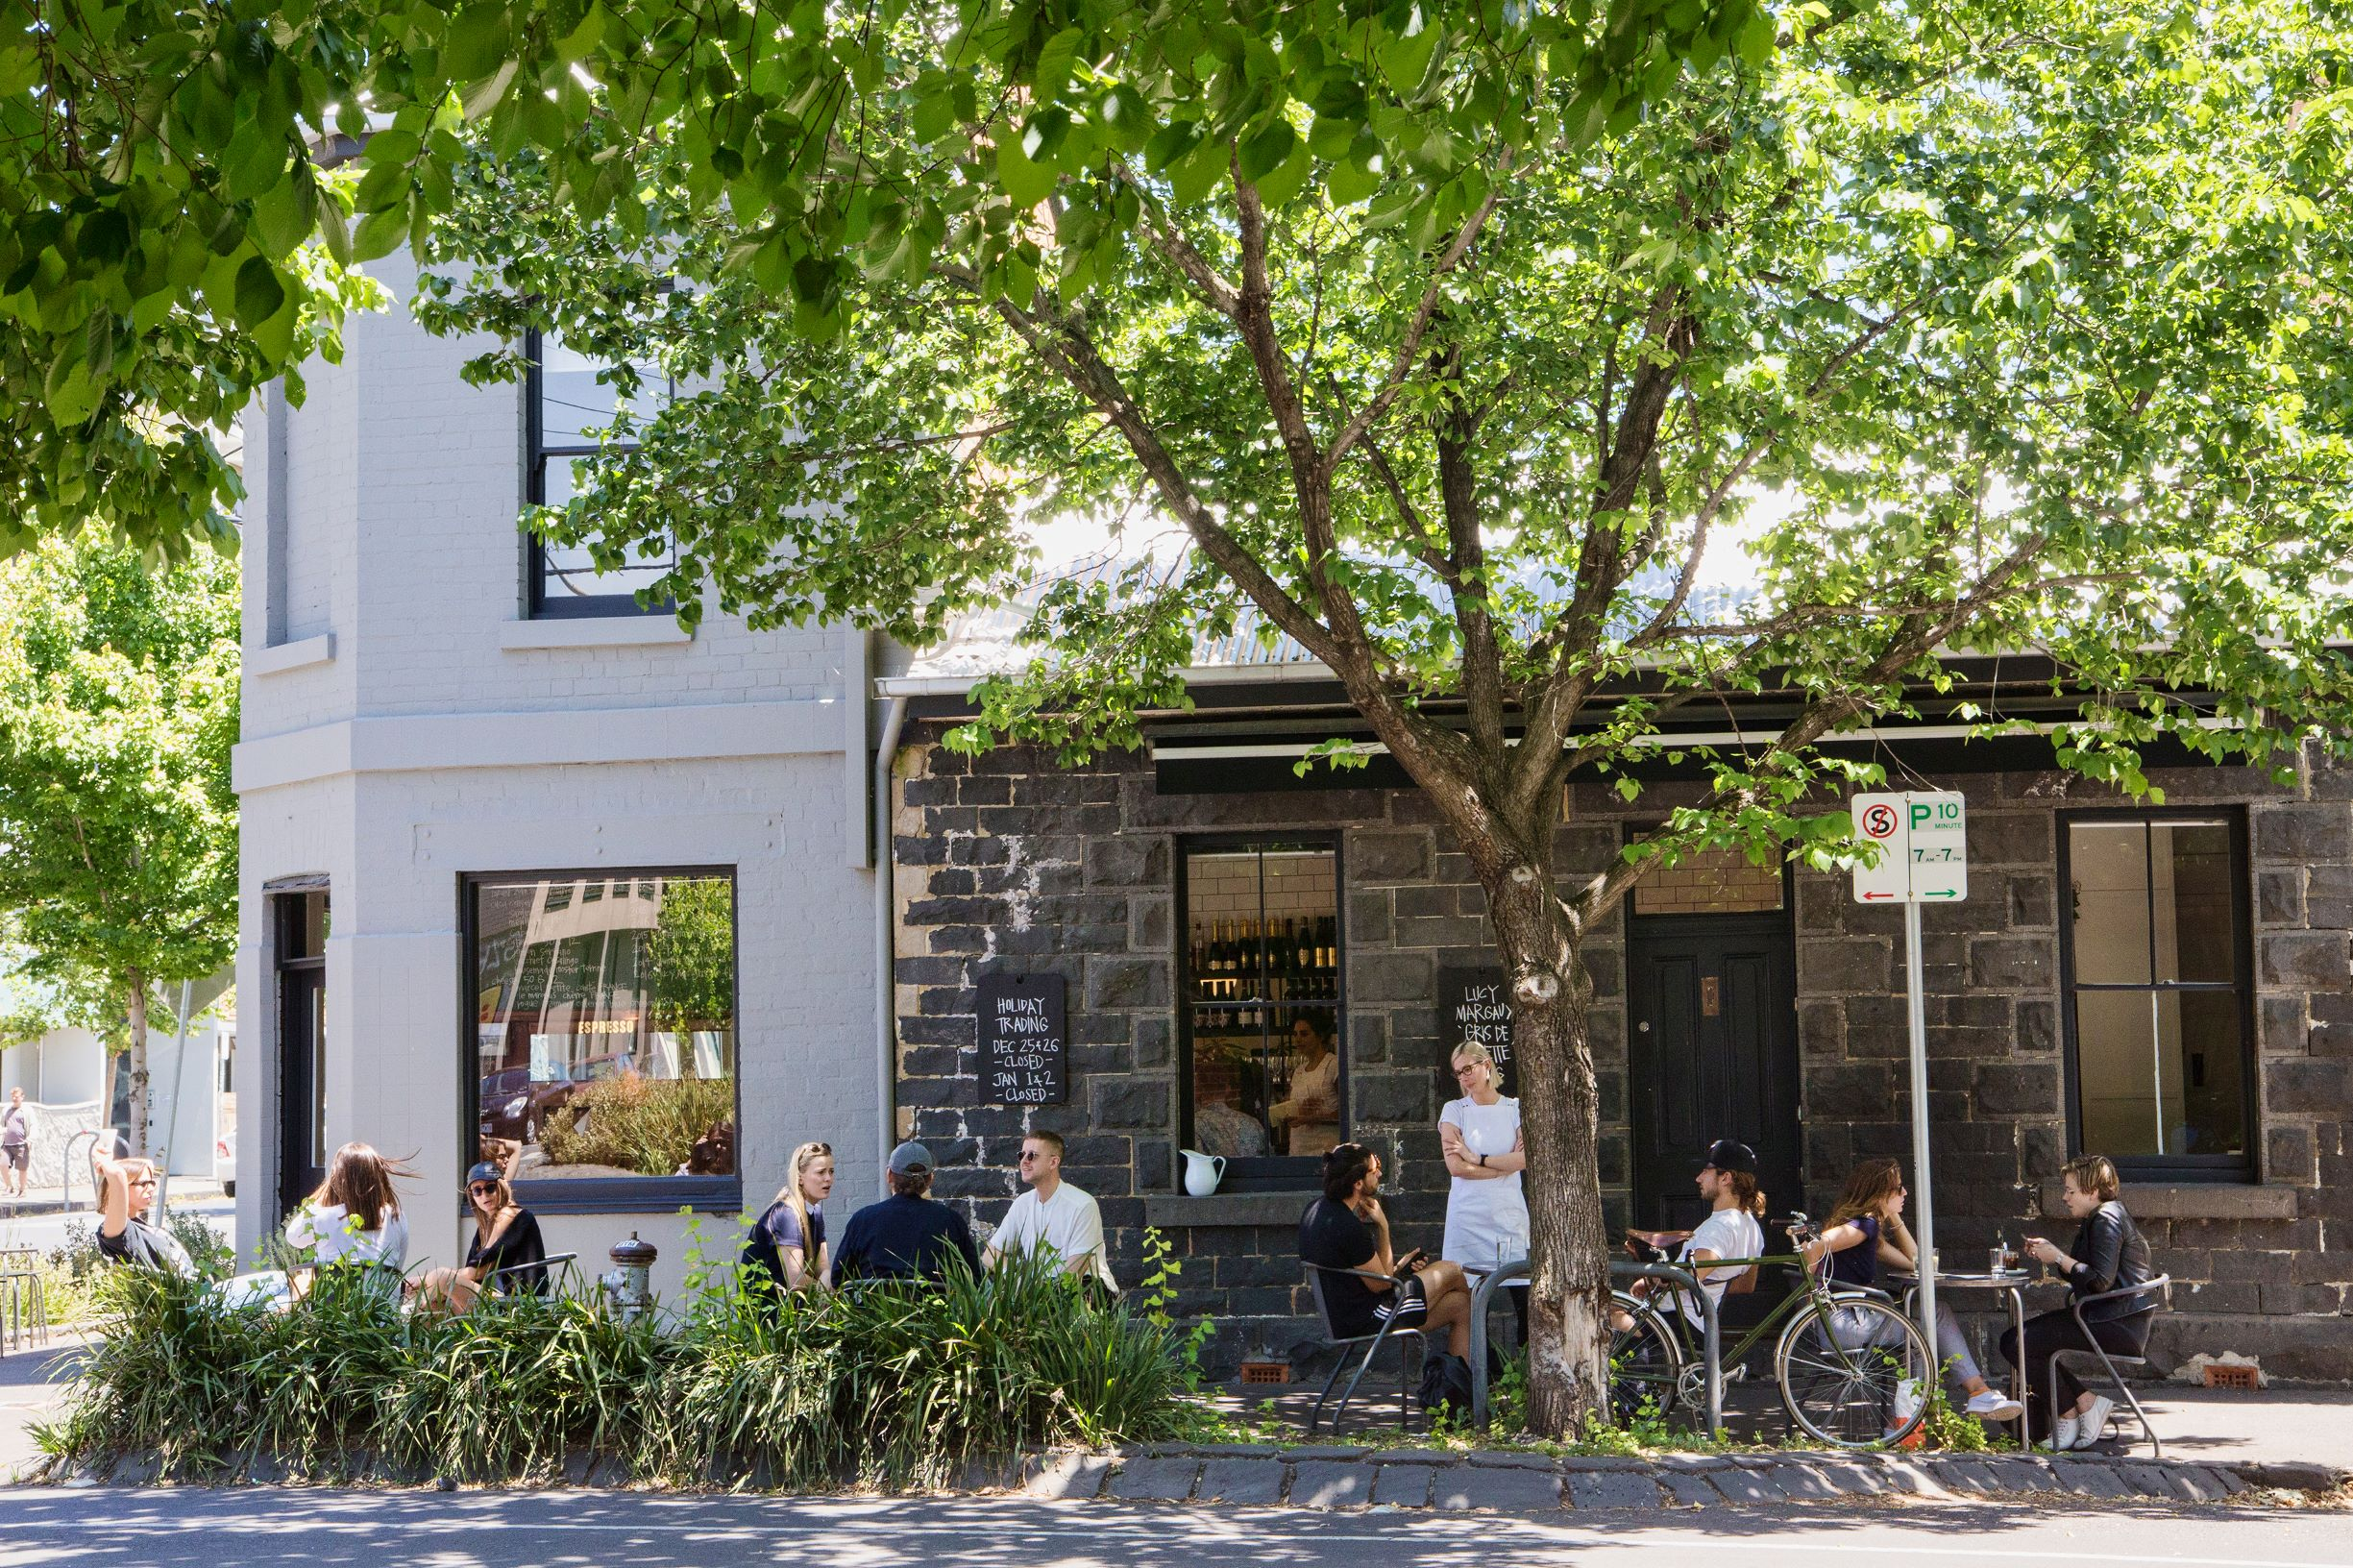 Yarra's 30,000+ street and park trees help contribute to the liveability of our city.